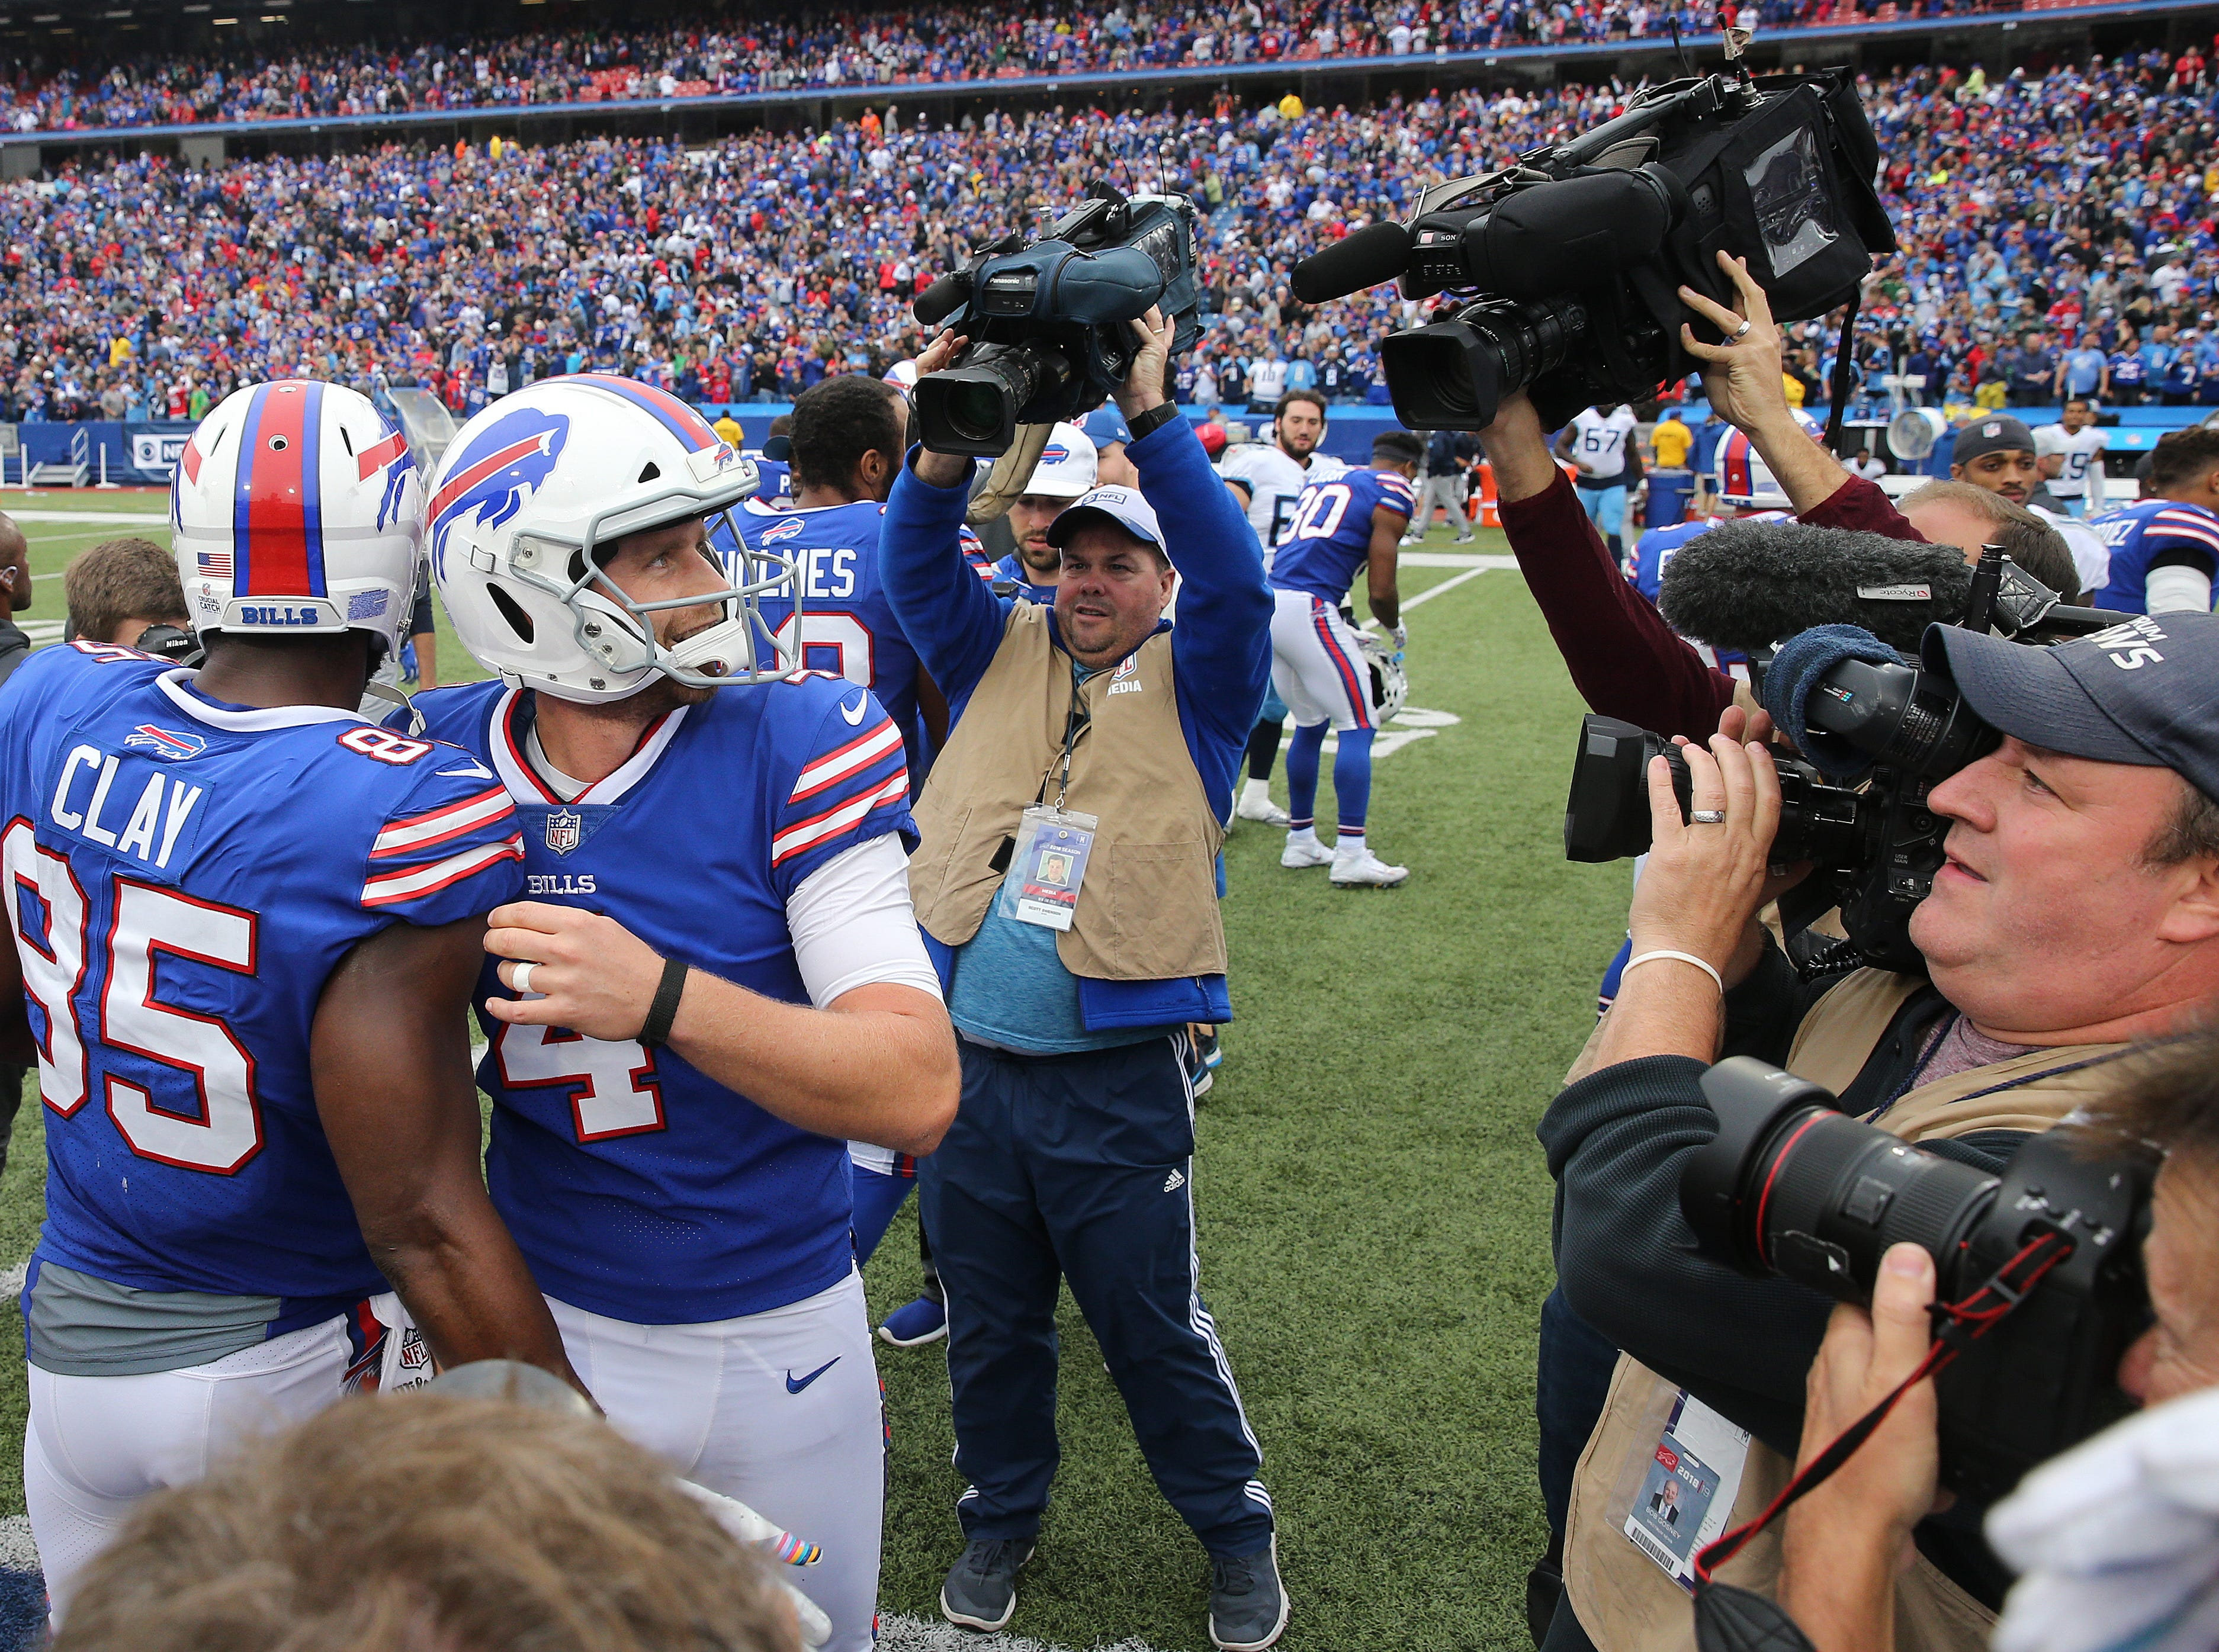 Bills kicker Stephen Hauschka is congratulated after kicking a 46-yard field goal o the last play of the game to be the Titans 13-12.